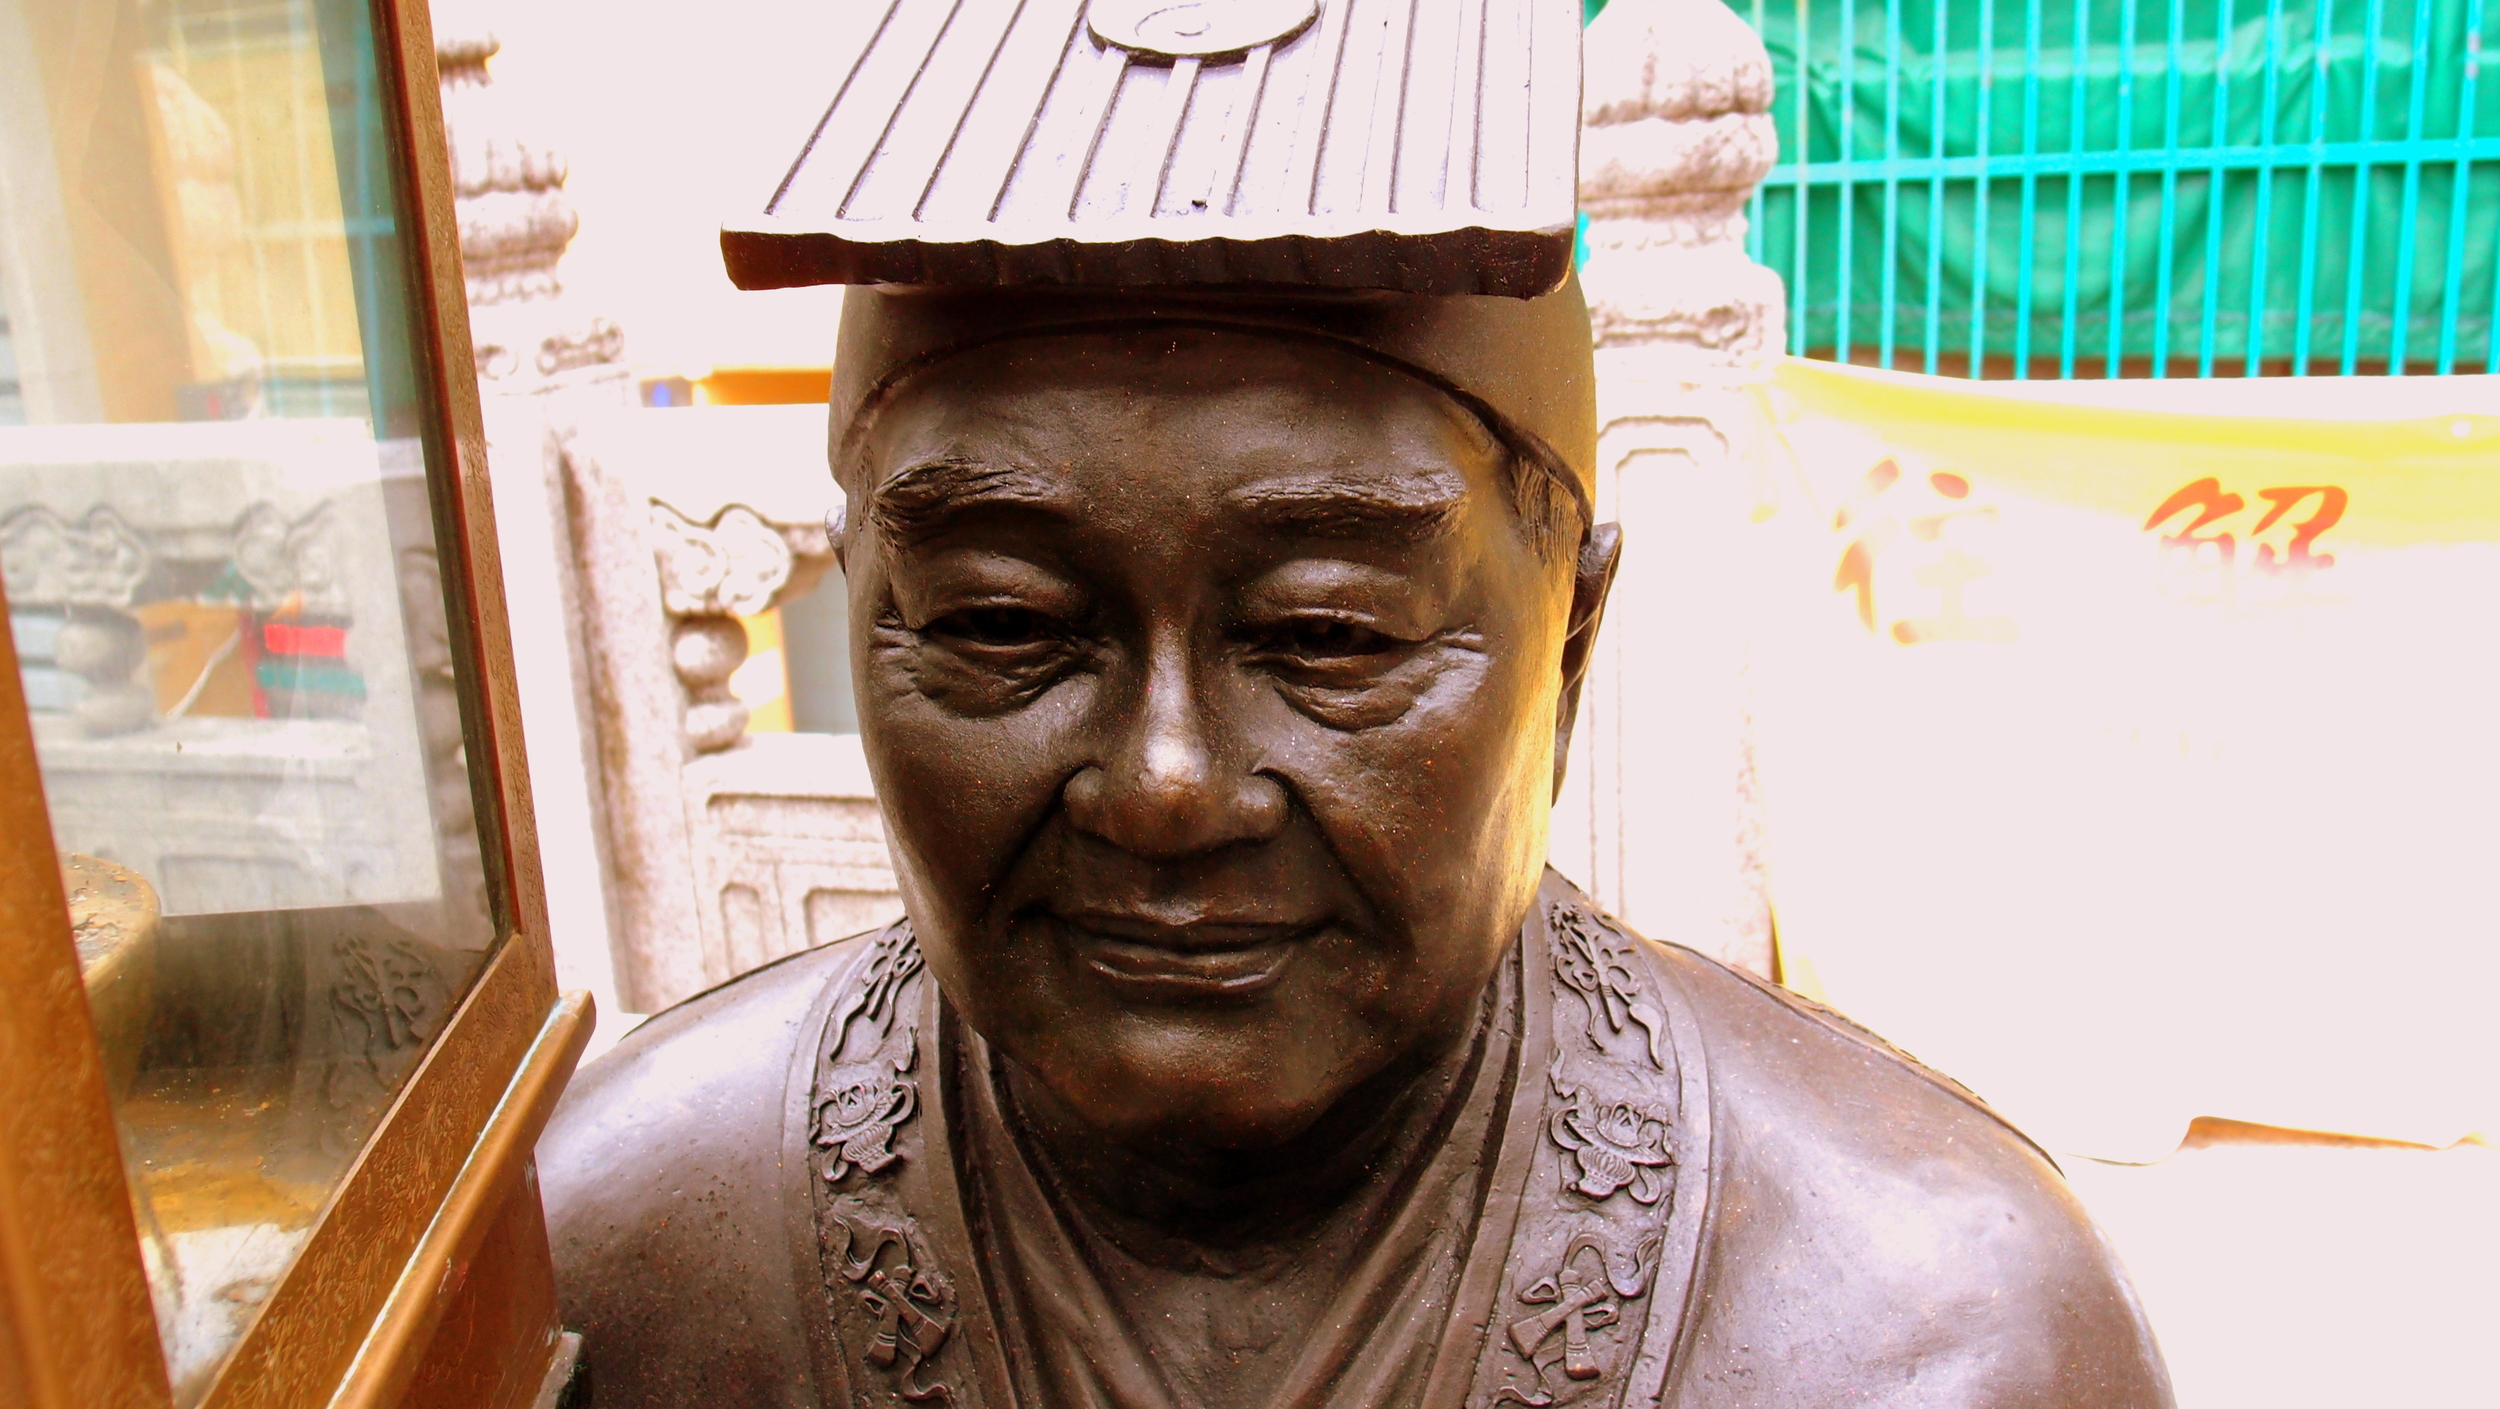 """This """"god"""" at the Sik Sik Yuen Wong Tai Sin Temple looks remarkably like the famous movie star Chow Yun Fat!"""